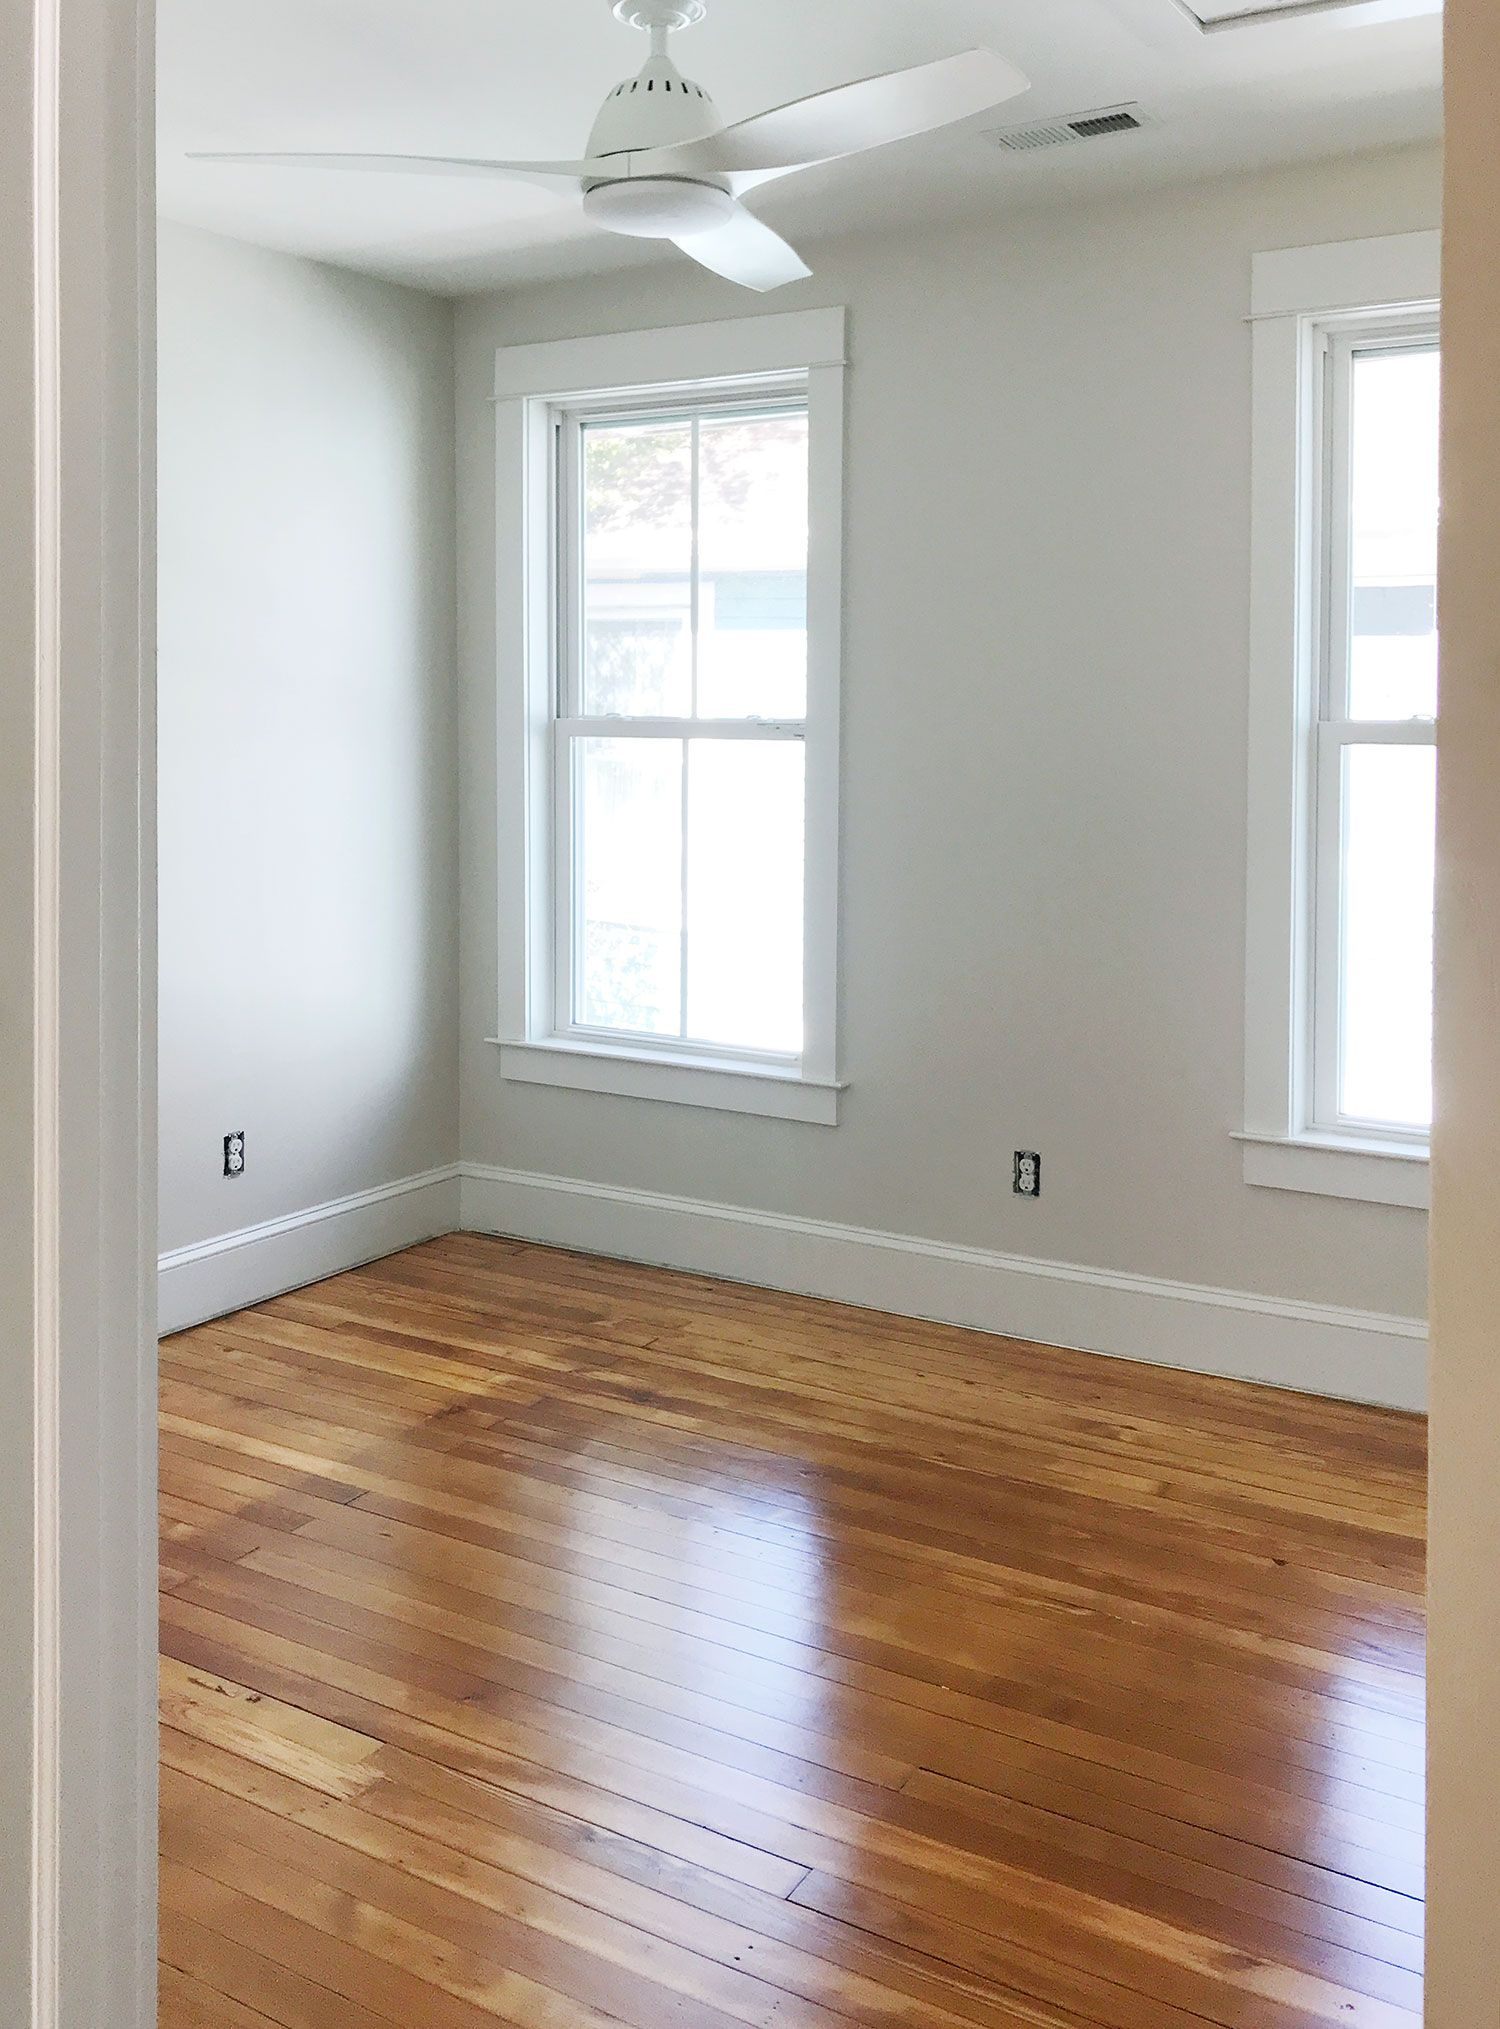 The Pine Floors At The Beach House Are Refinished - AND IT CHANGES